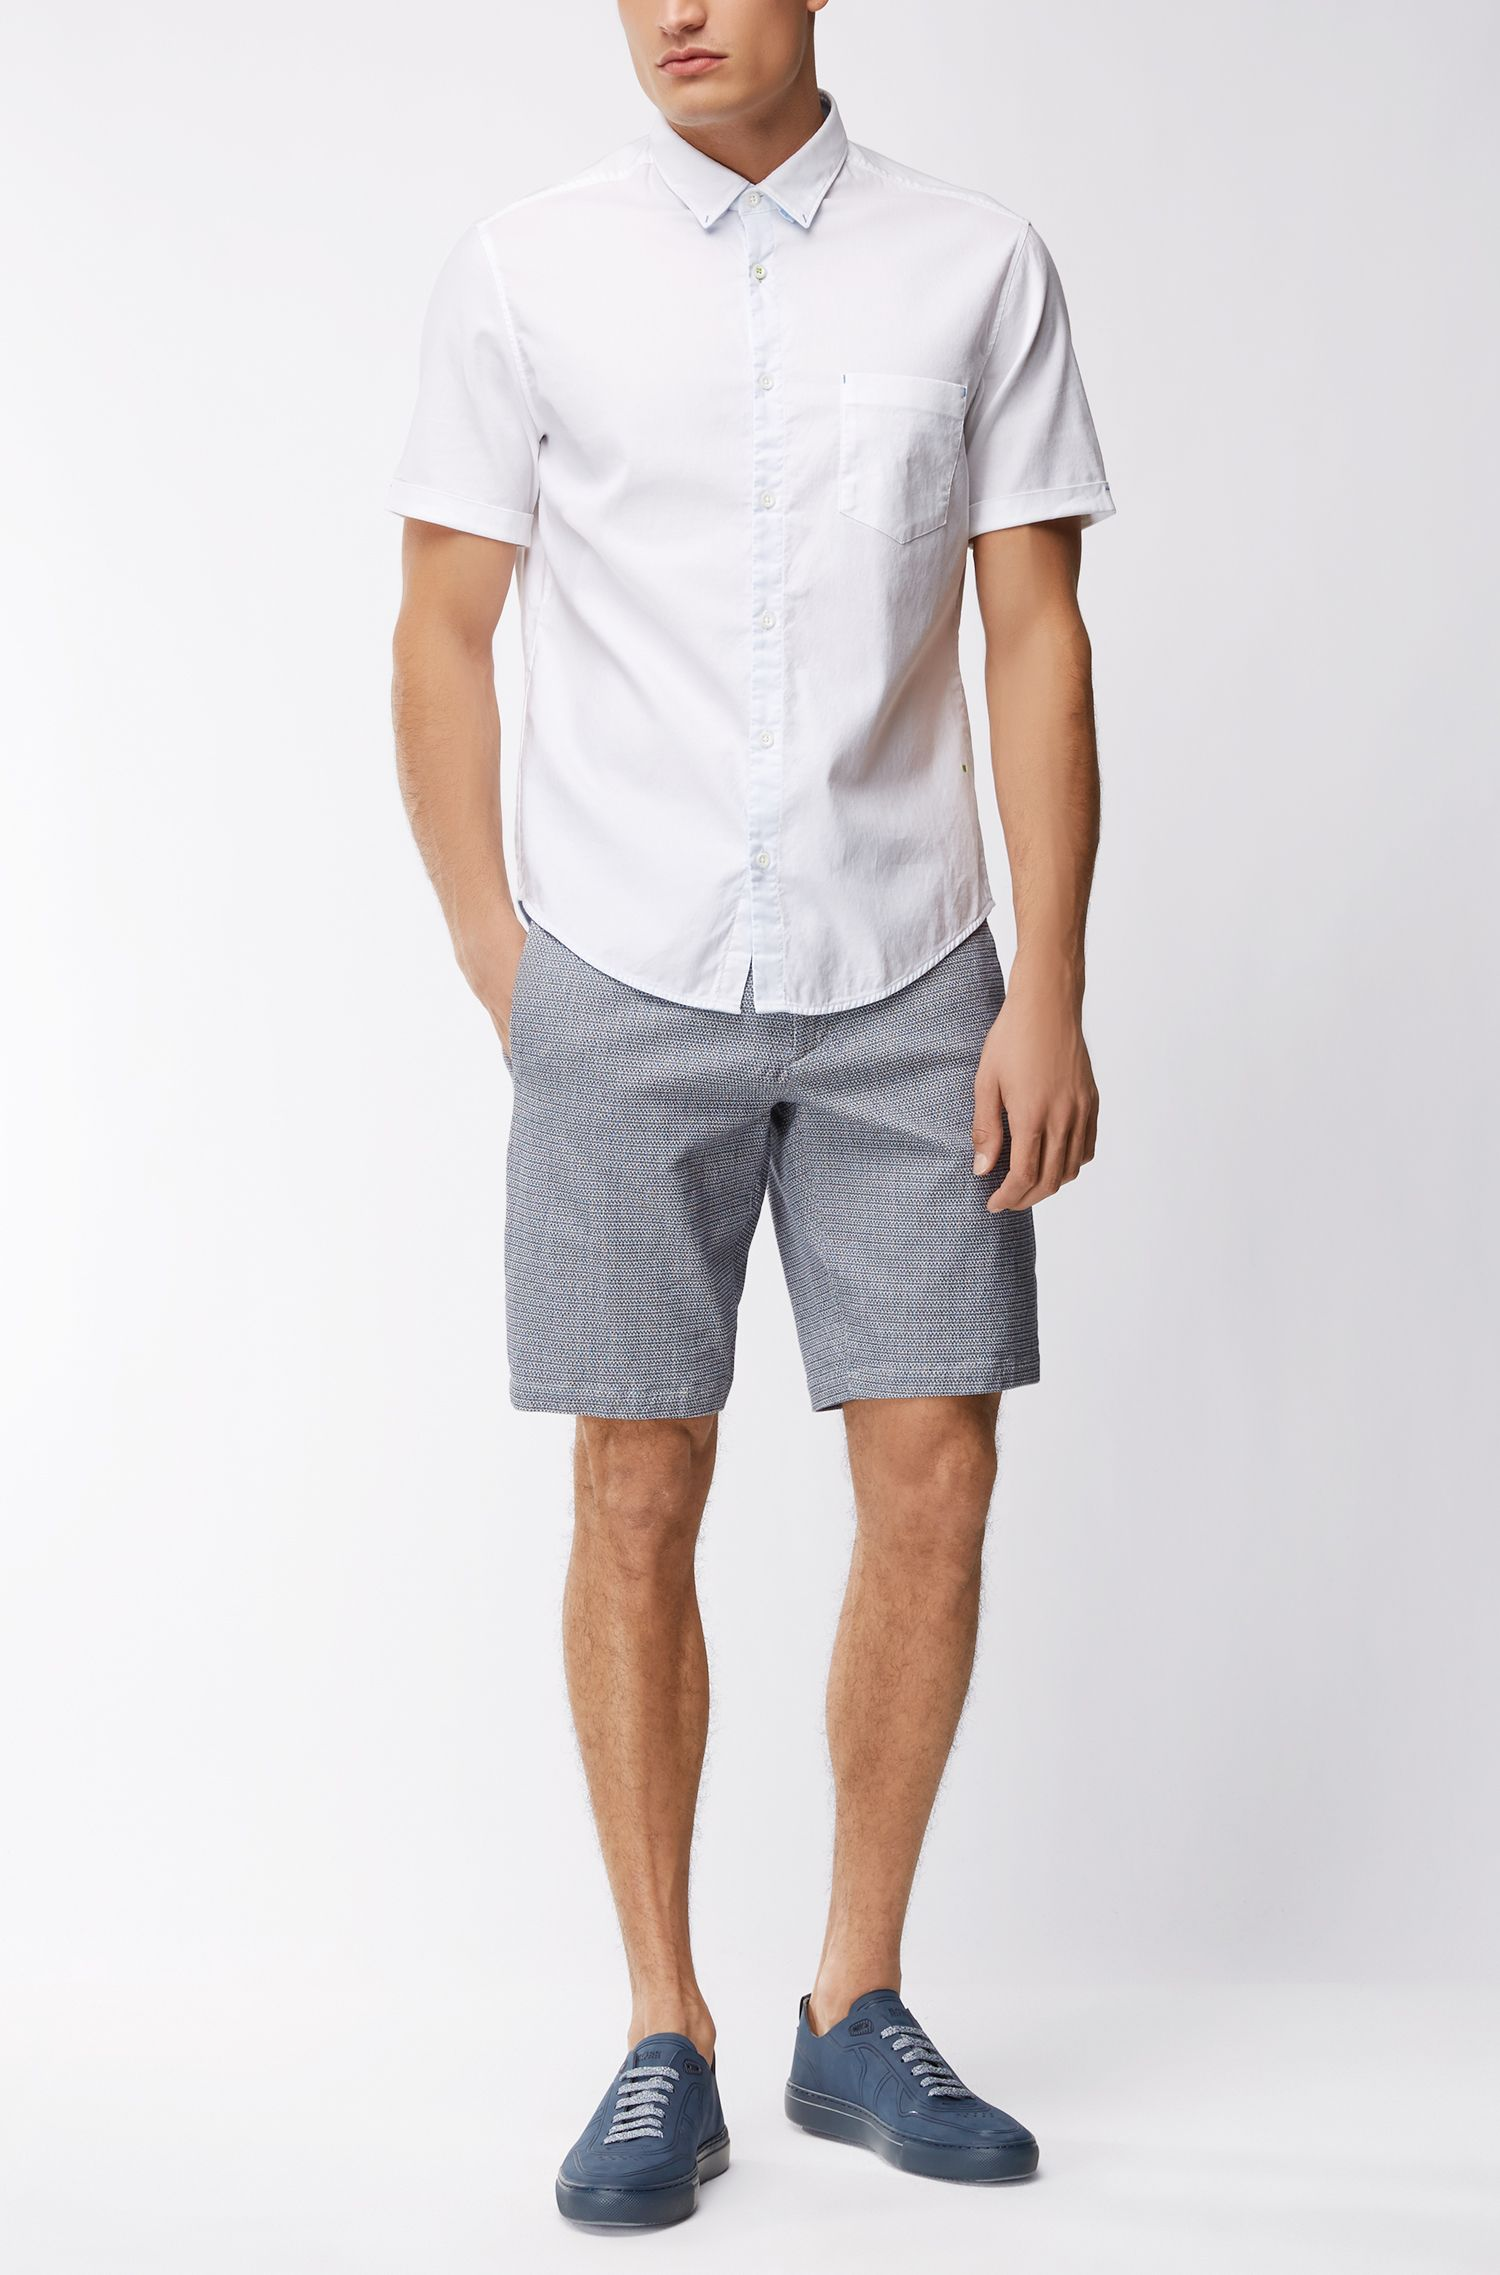 Slim-Fit Shorts aus strukturierter Stretch-Baumwolle